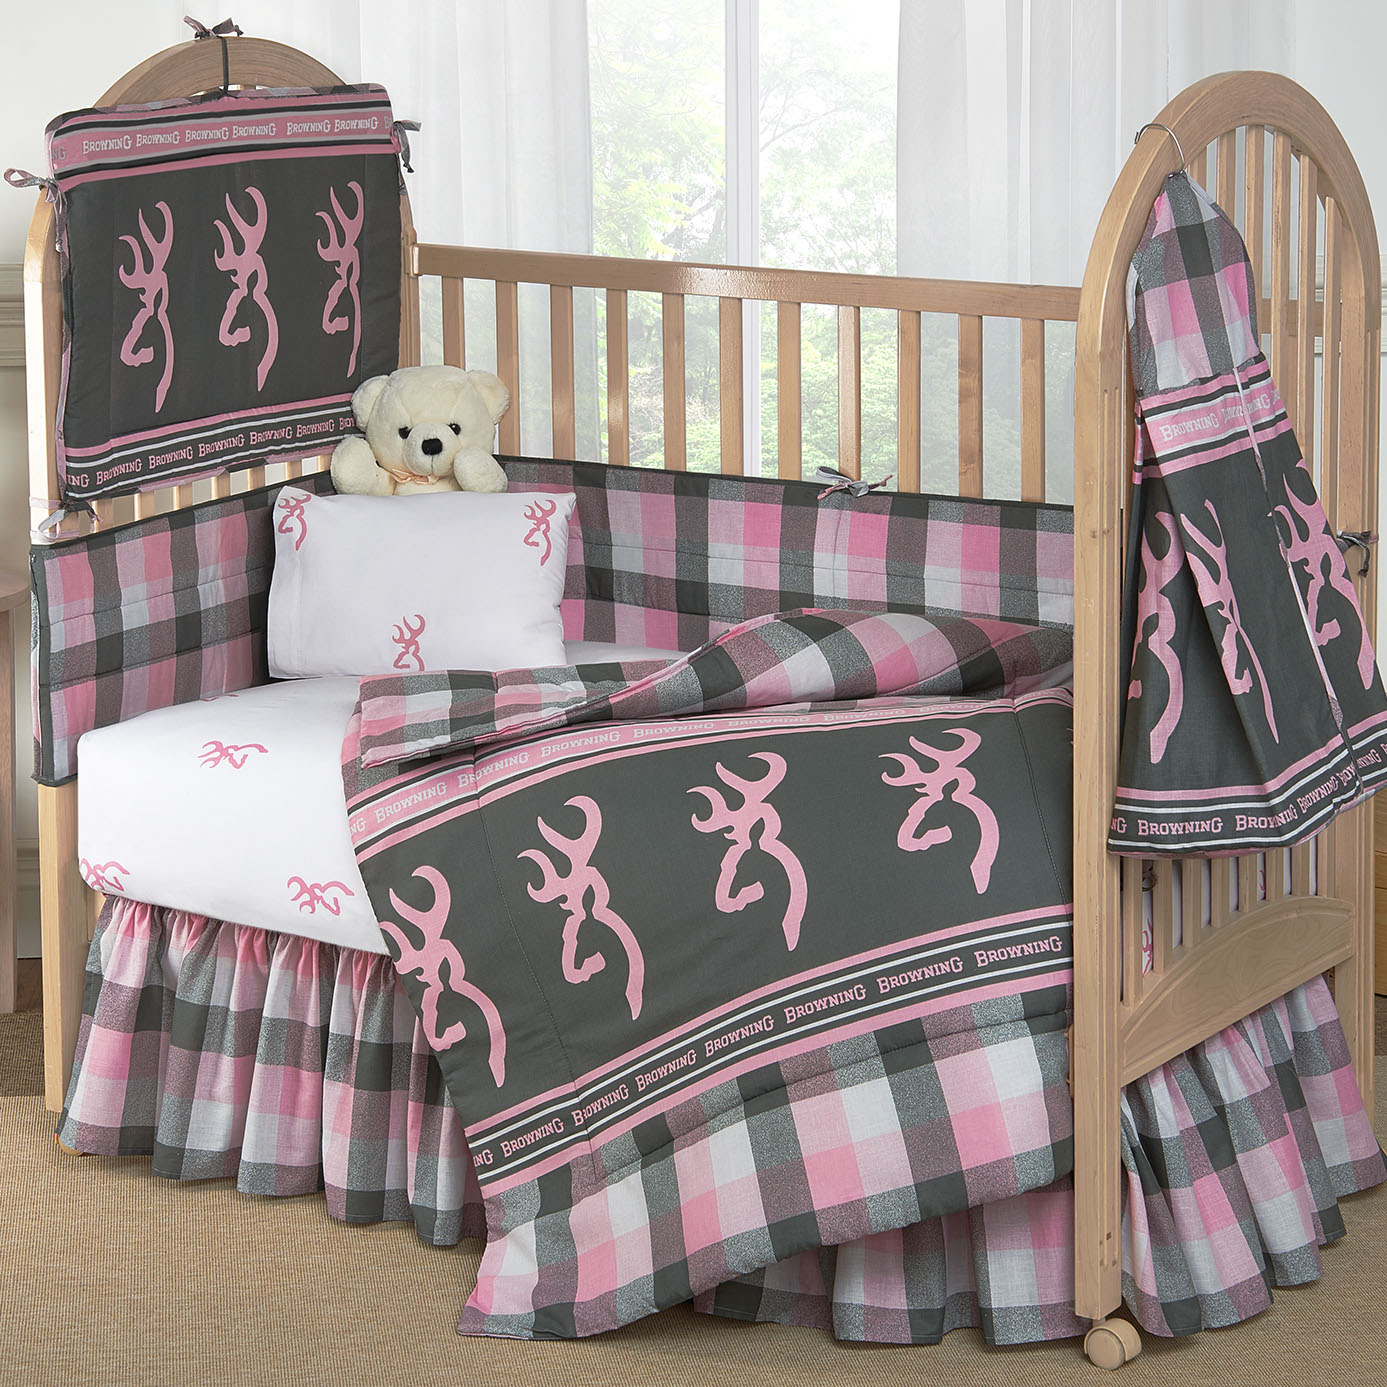 Rustic beddings new baby crib set category rustic bedding blog although people might consider rustic themed baby nurseries to be more of a boys thing our collection country baby crib bedding sets feature bedding both sciox Image collections